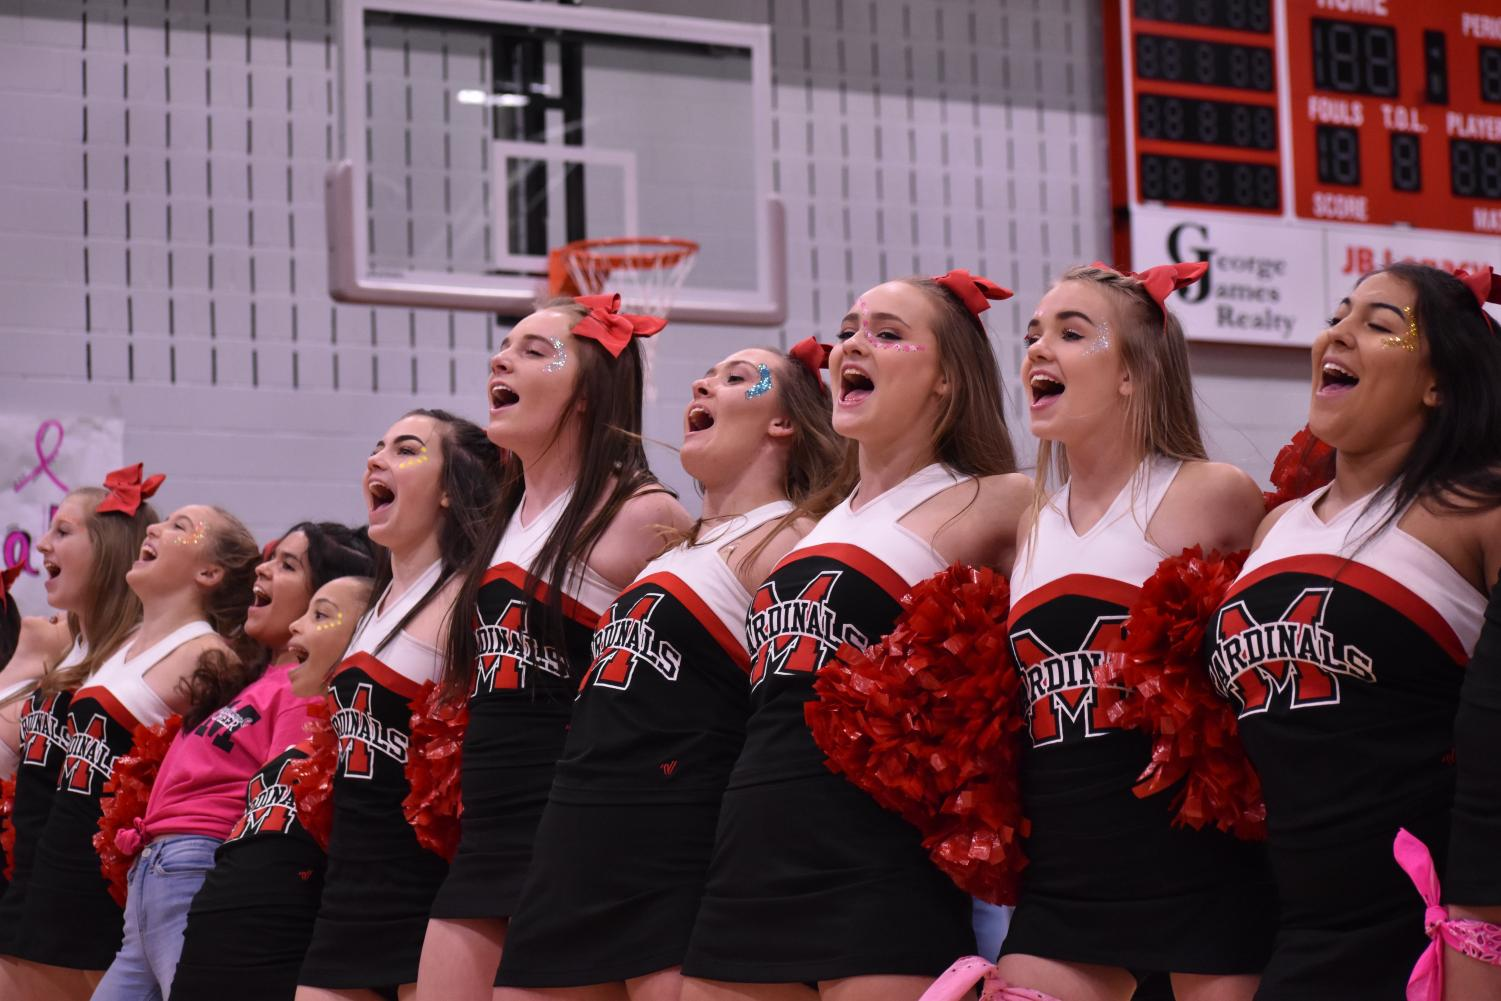 The cheer team leads the student body in Big Fatty.